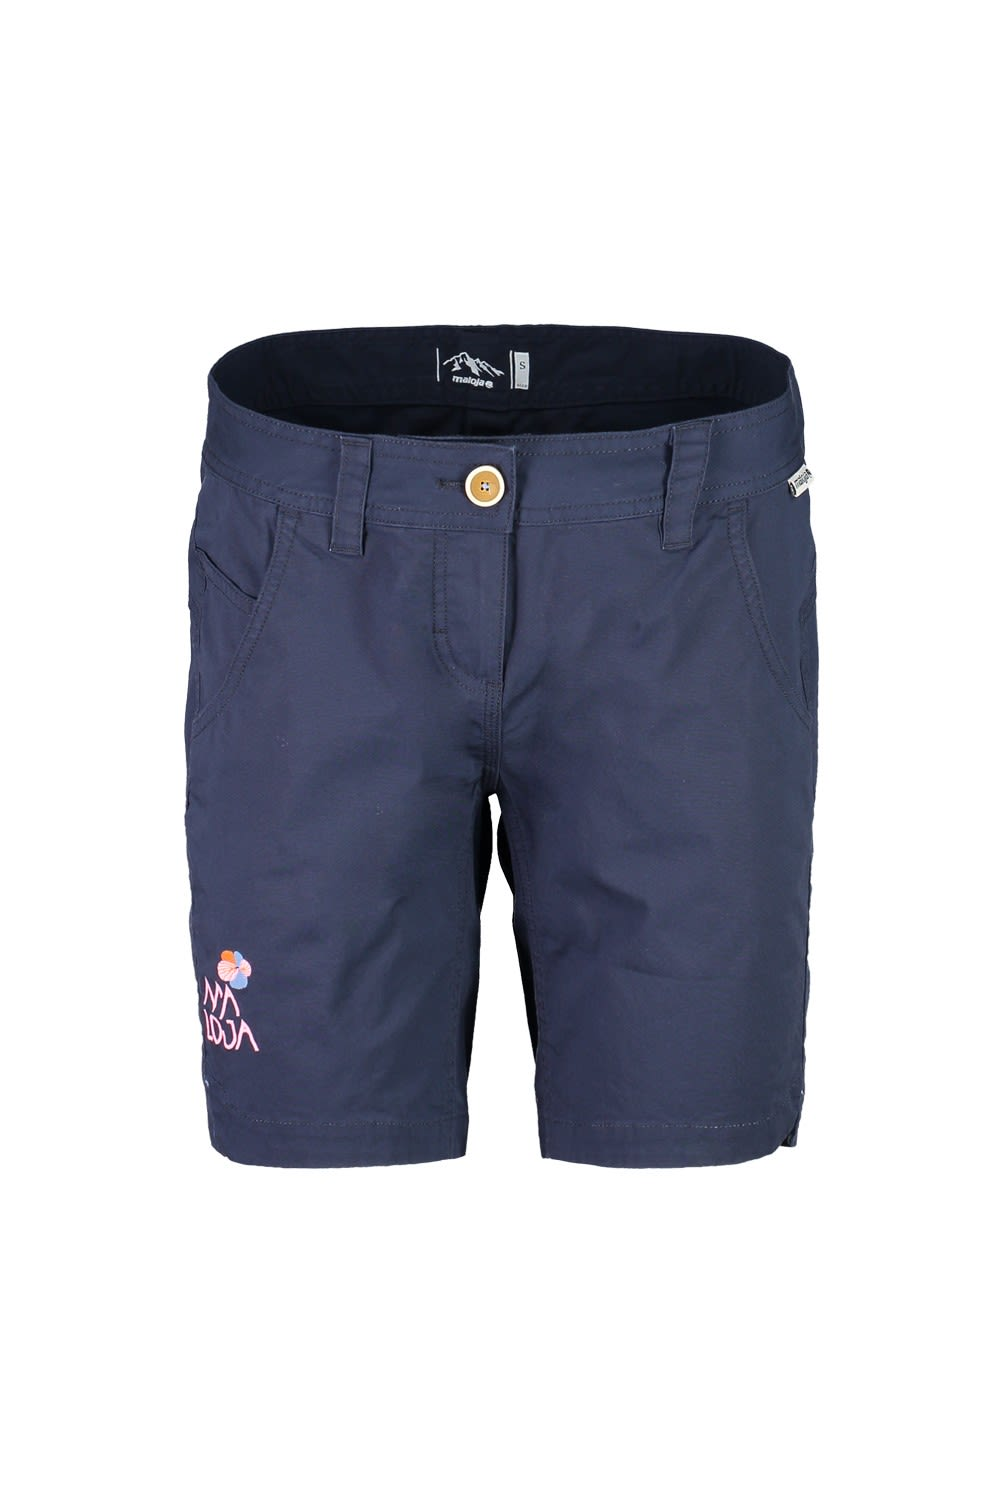 Maloja Bettinam. Shorts Blau, Female Shorts, S